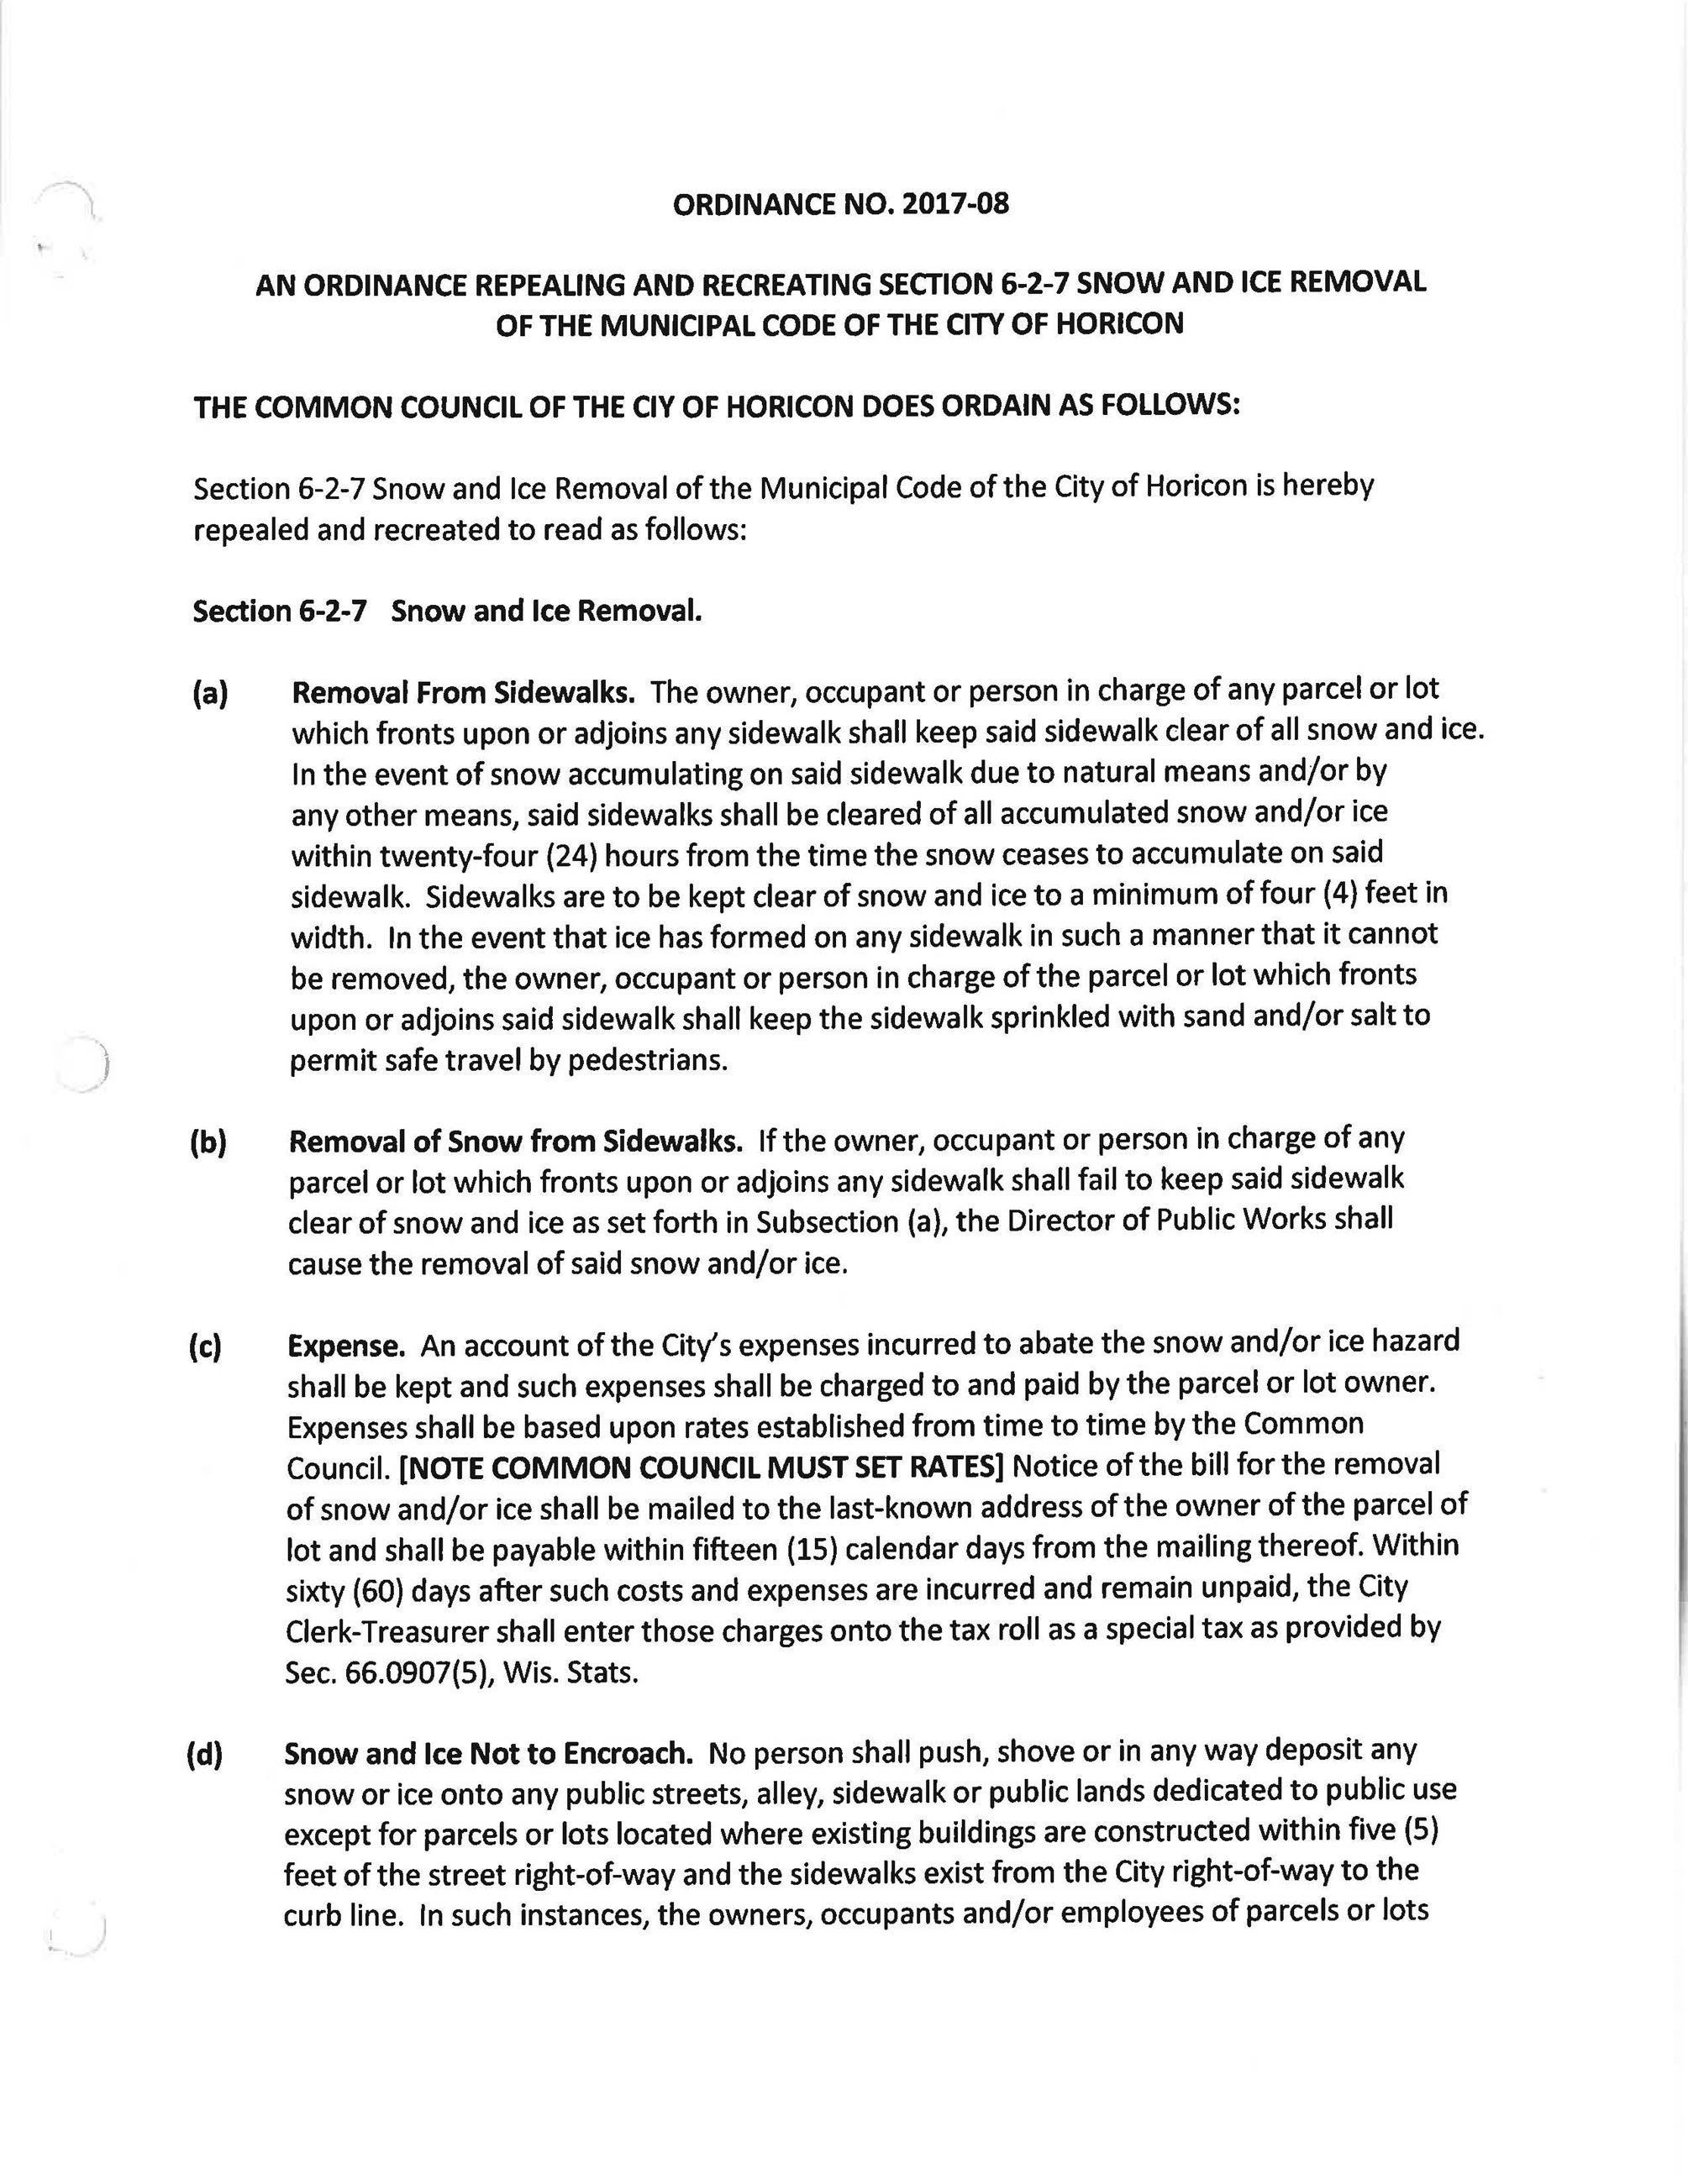 Snow_Ice Removal_Ordinance 2017-08_Page_1